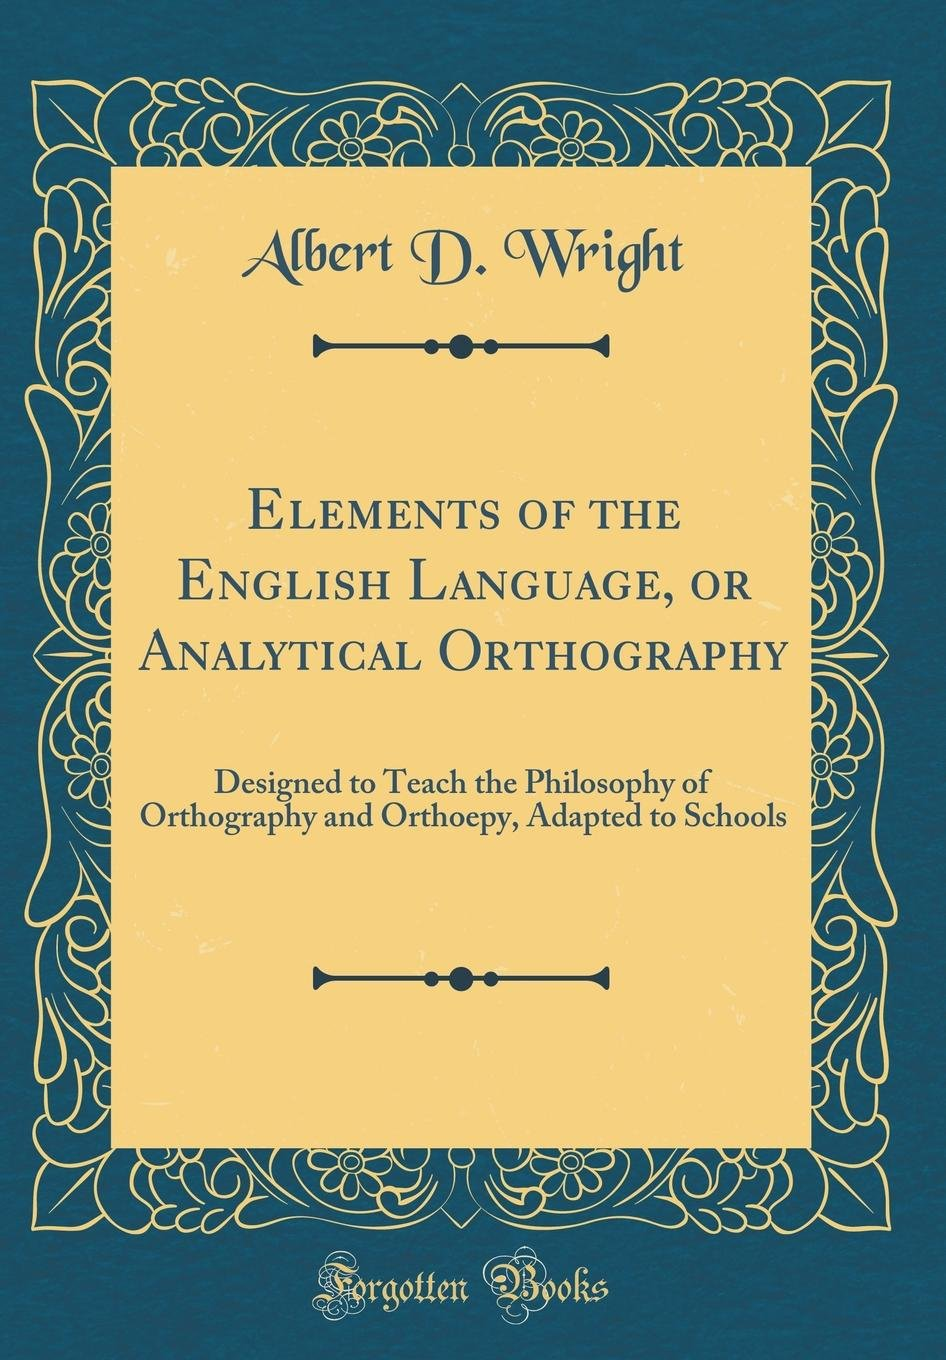 Elements of the English Language, or Analytical Orthography: Designed to Teach the Philosophy of Orthography and Orthoepy, Adapted to Schools (Classic Reprint) pdf